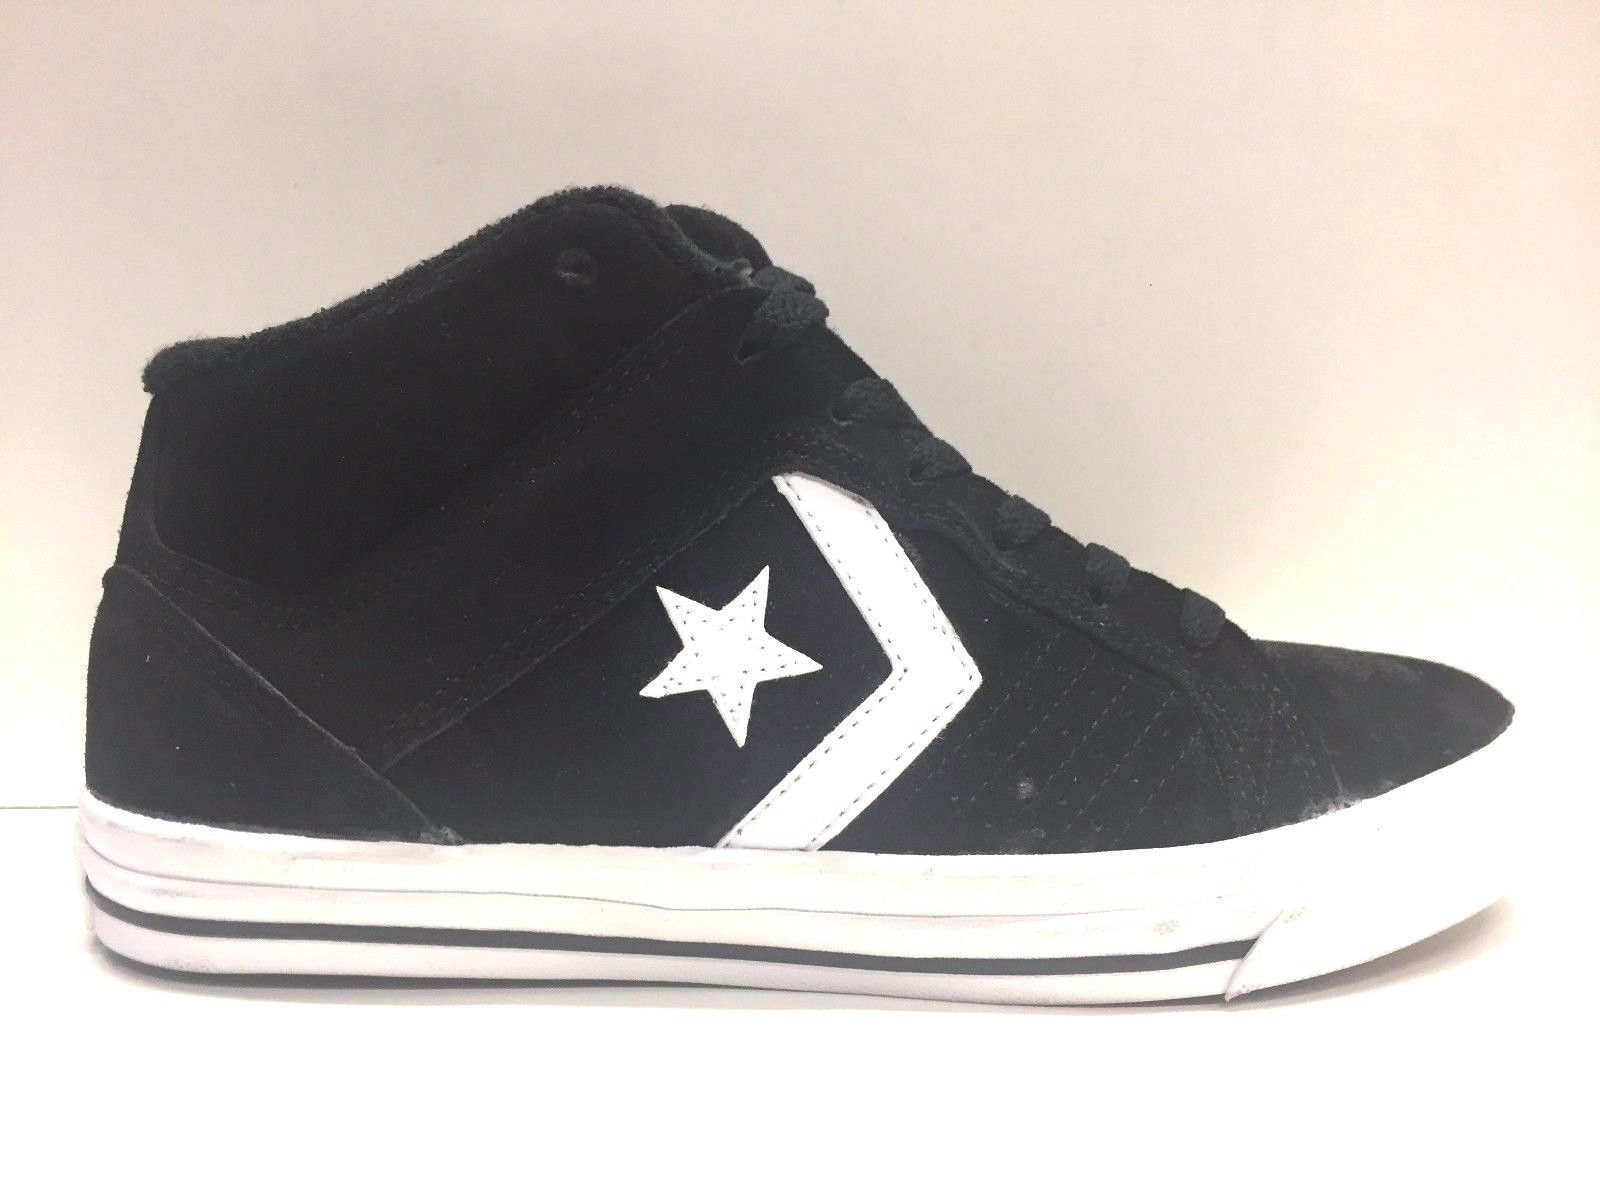 SCARPE SNEAKERS UOMO CONVERSE ALL STAR ORIGINAL GATES MID 117179 PELLE A/I NEW